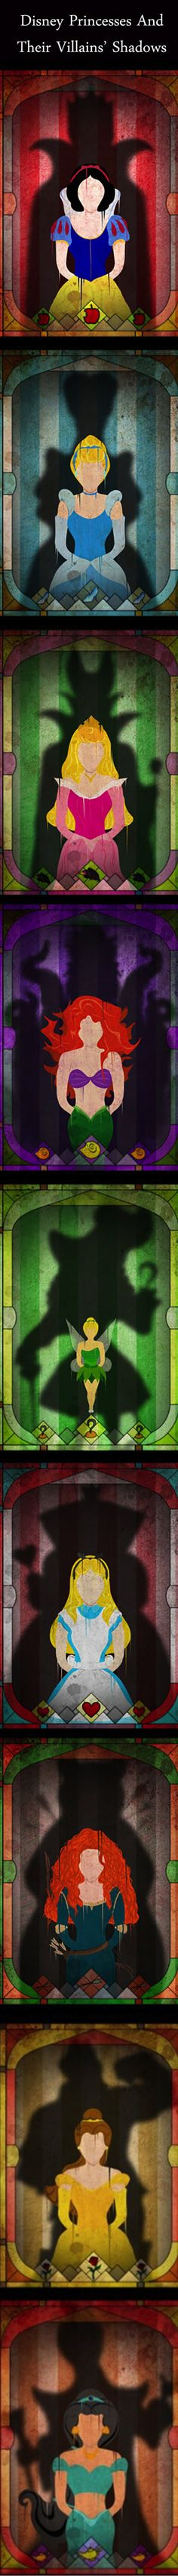 9 Disney Heroes Who Are Haunted By Their Villains' Shadows